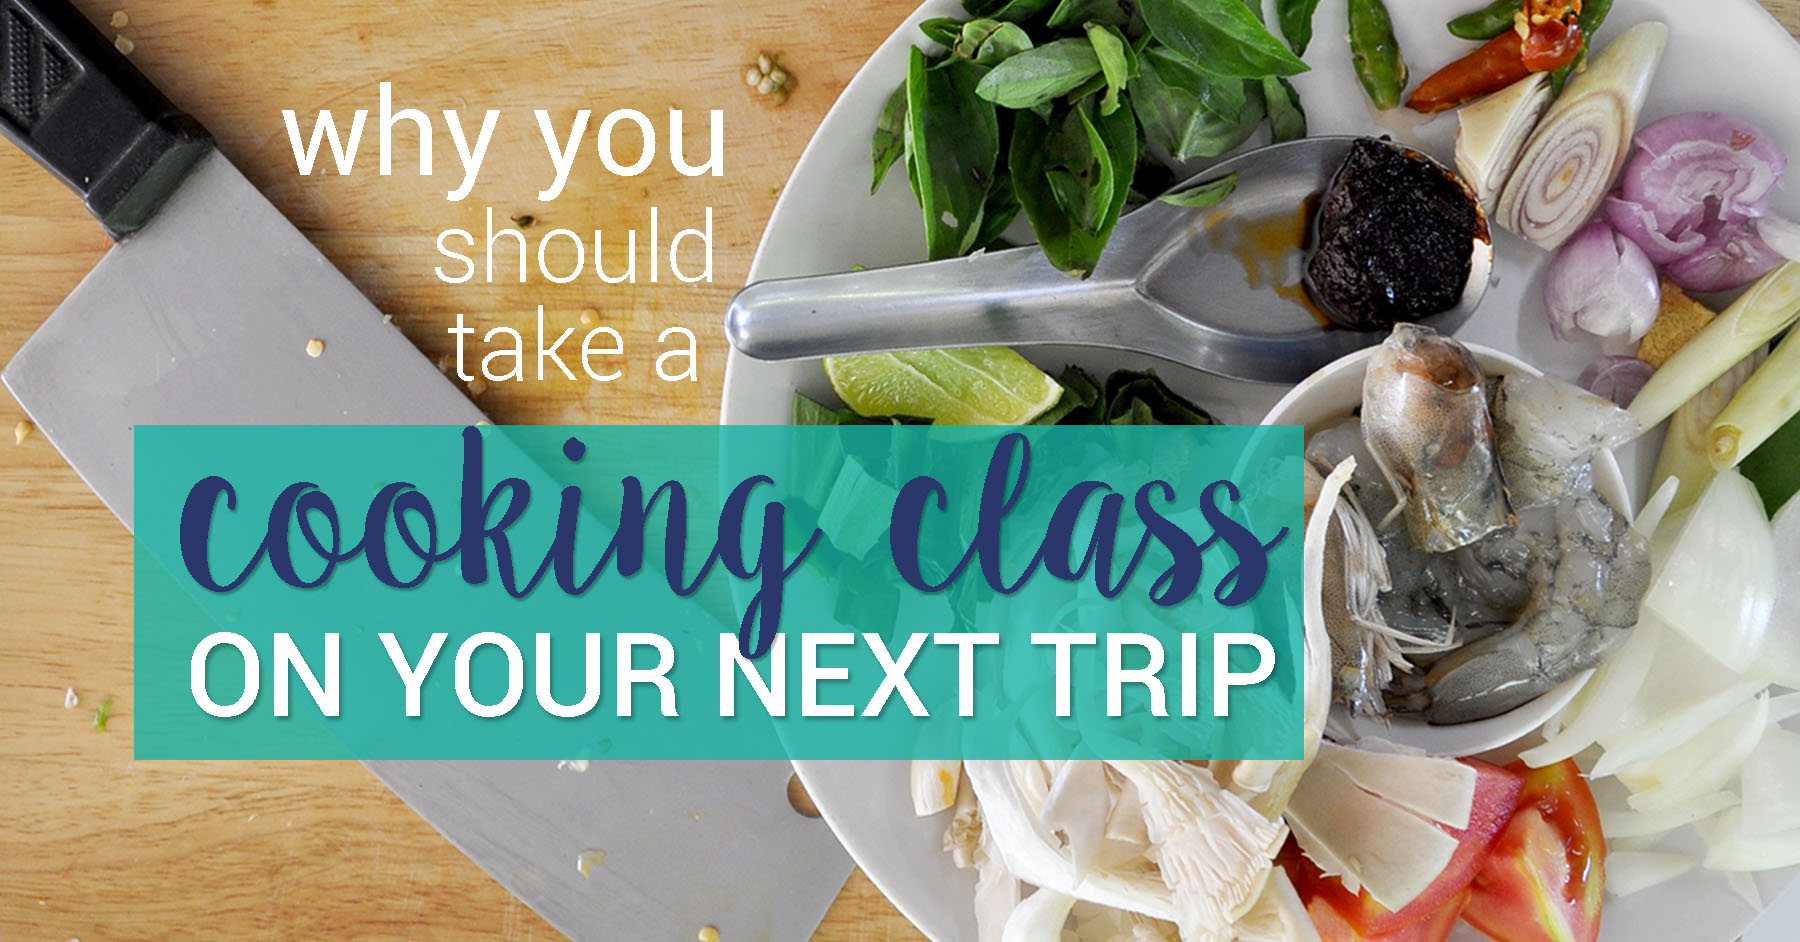 Why you should take a cooking class on your next trip